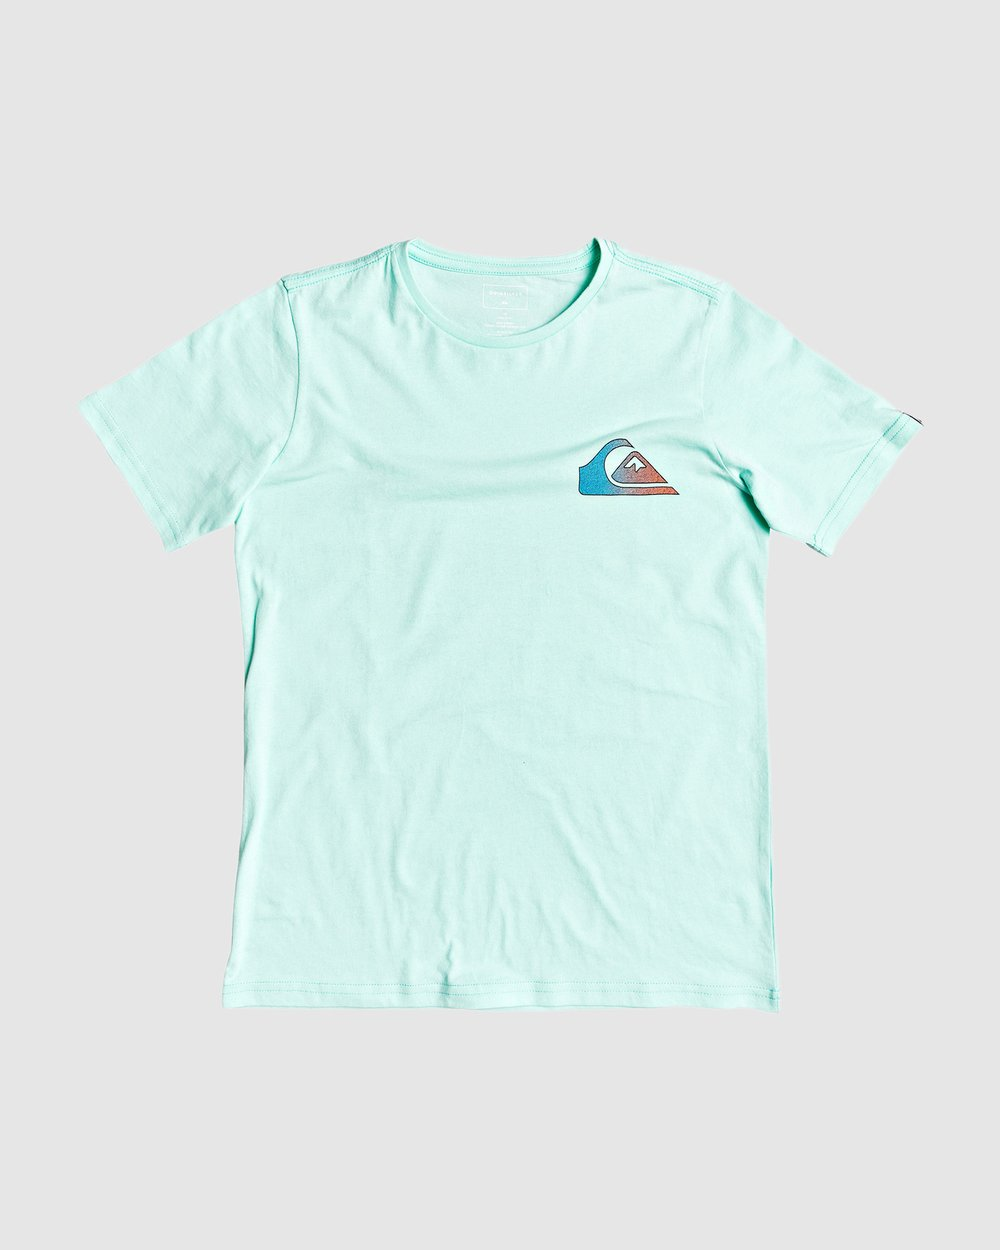 BLUEISH GREY- SIZE 8,12,14 /& 16 YEARS NEW Quiksilver Boys Printed T Shirt